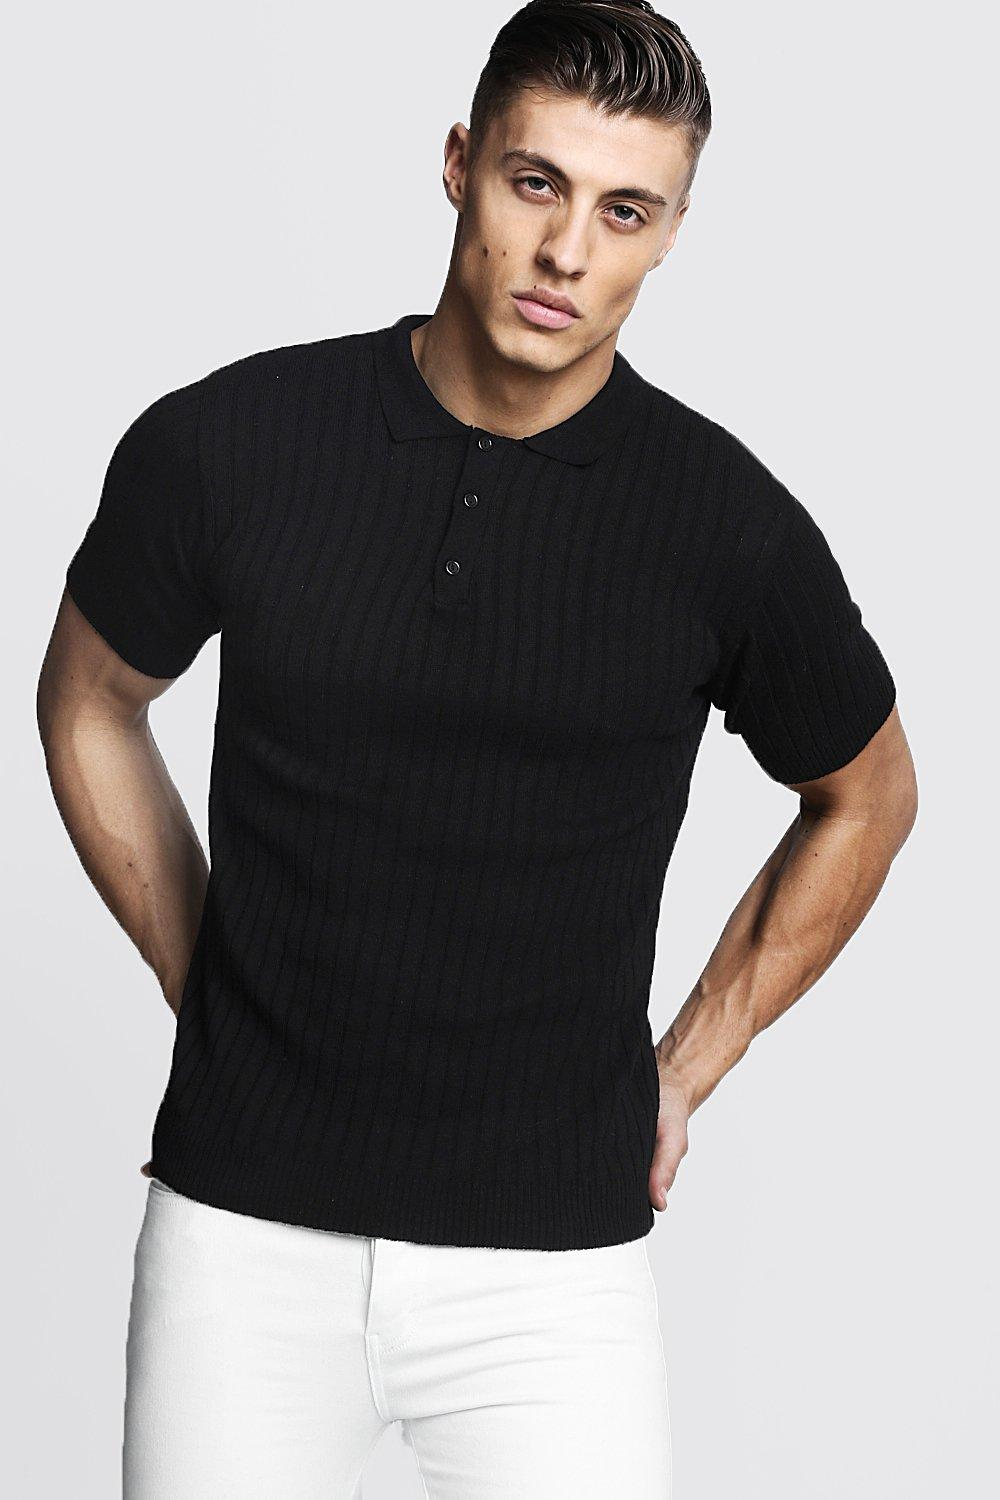 Mens Vintage Shirts – Casual, Dress, T-shirts, Polos Mens Muscle Fit Ribbed Knitted Polo - Black $13.00 AT vintagedancer.com